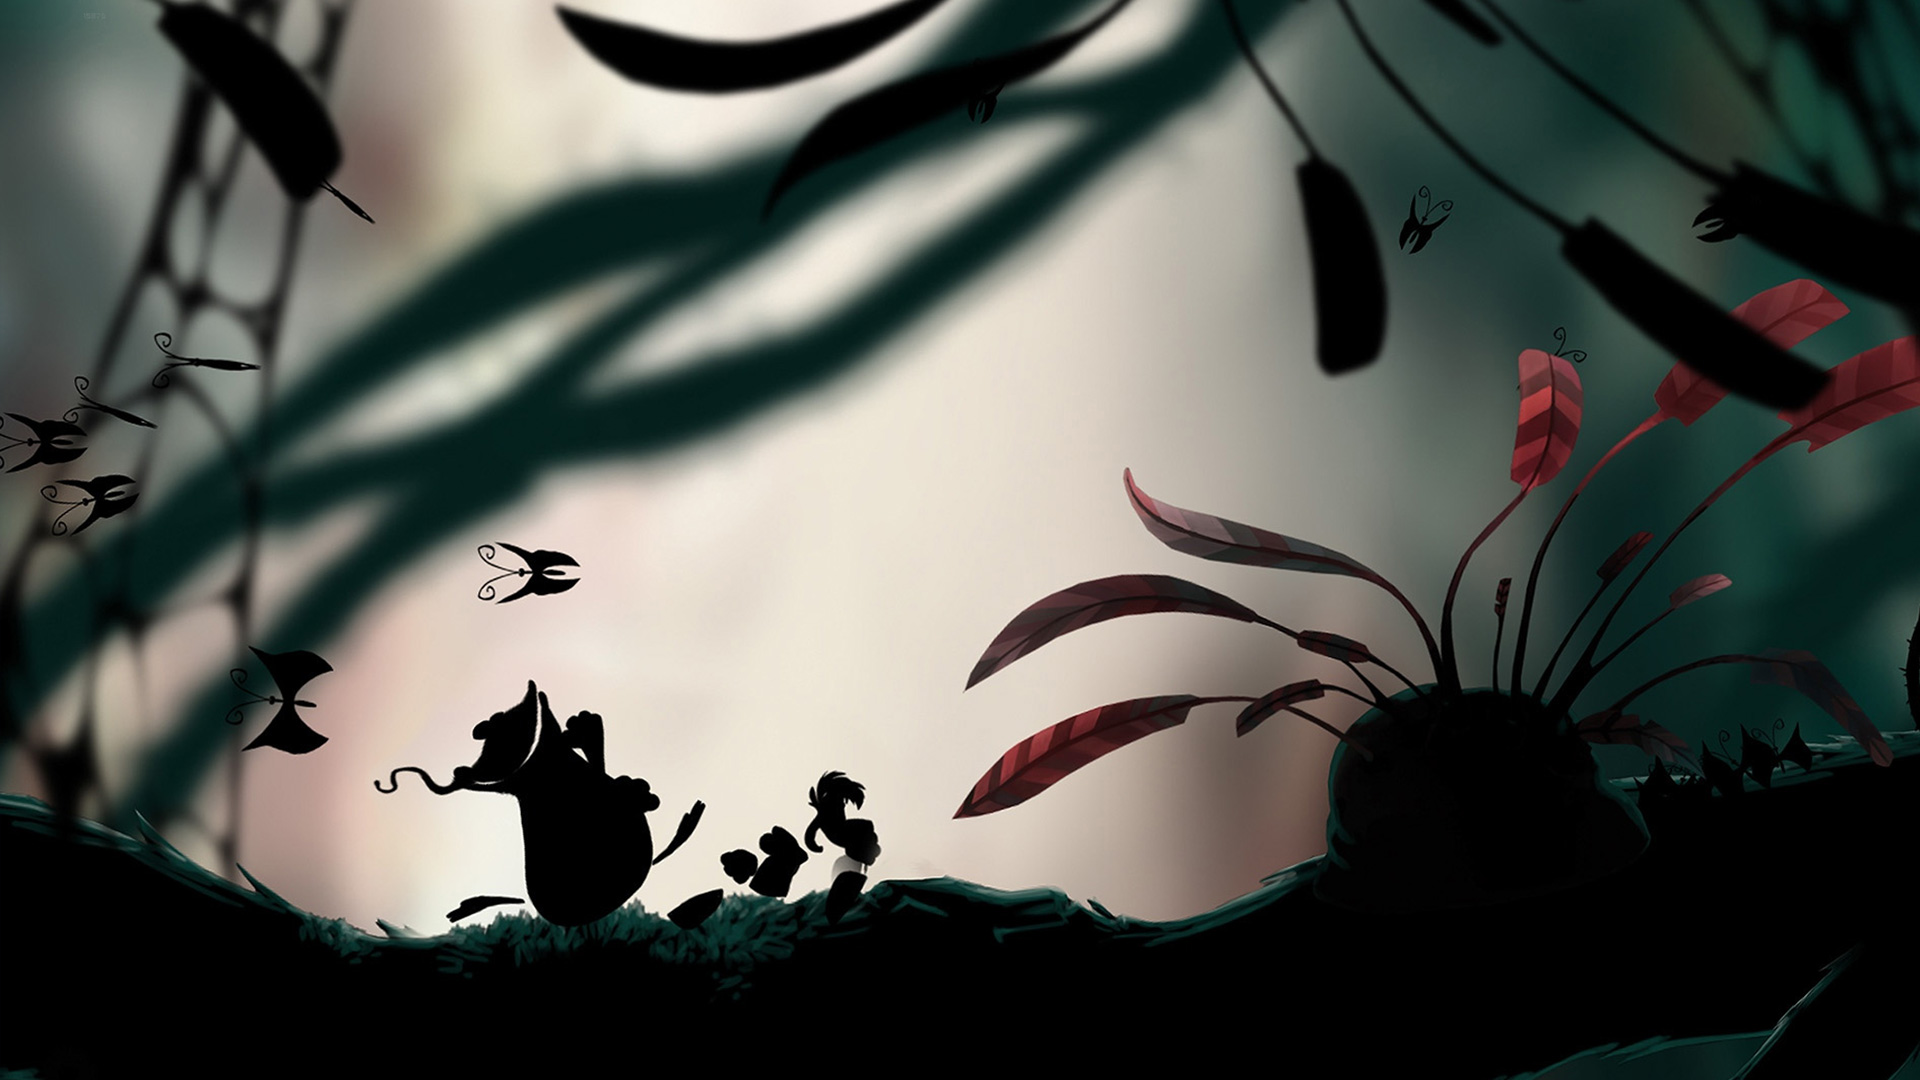 Rayman Origins Wallpaper in 1920x1080